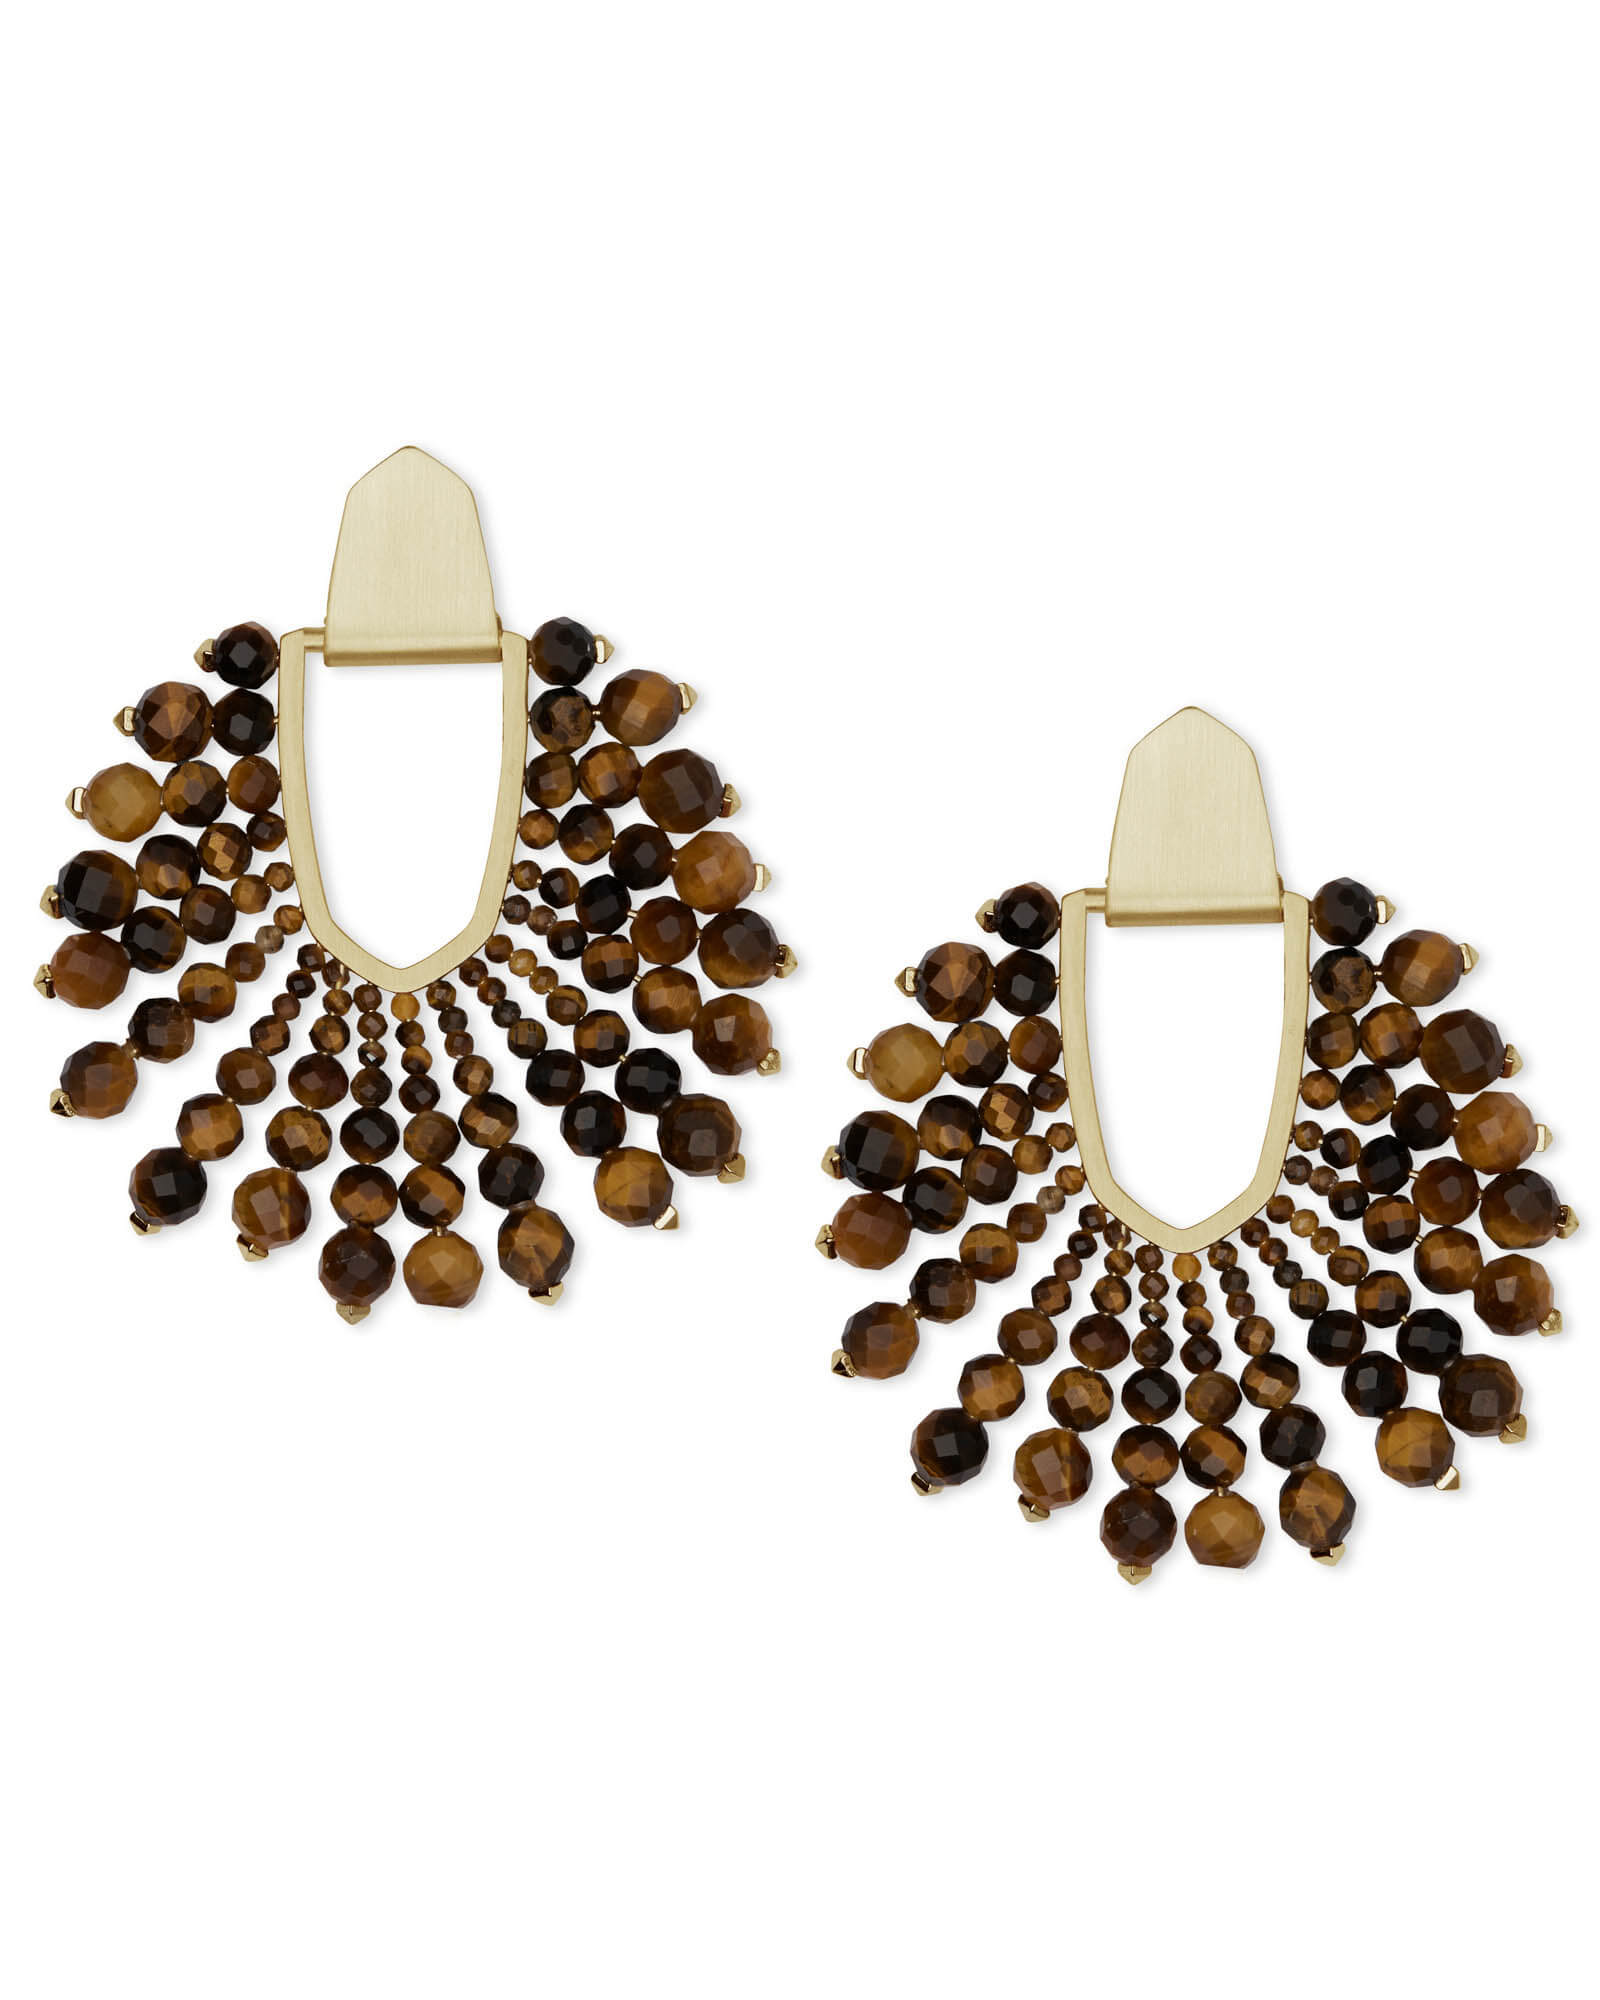 Diane Gold Statement Earrings In Beaded Brown Tigers Eye by Kendra Scott